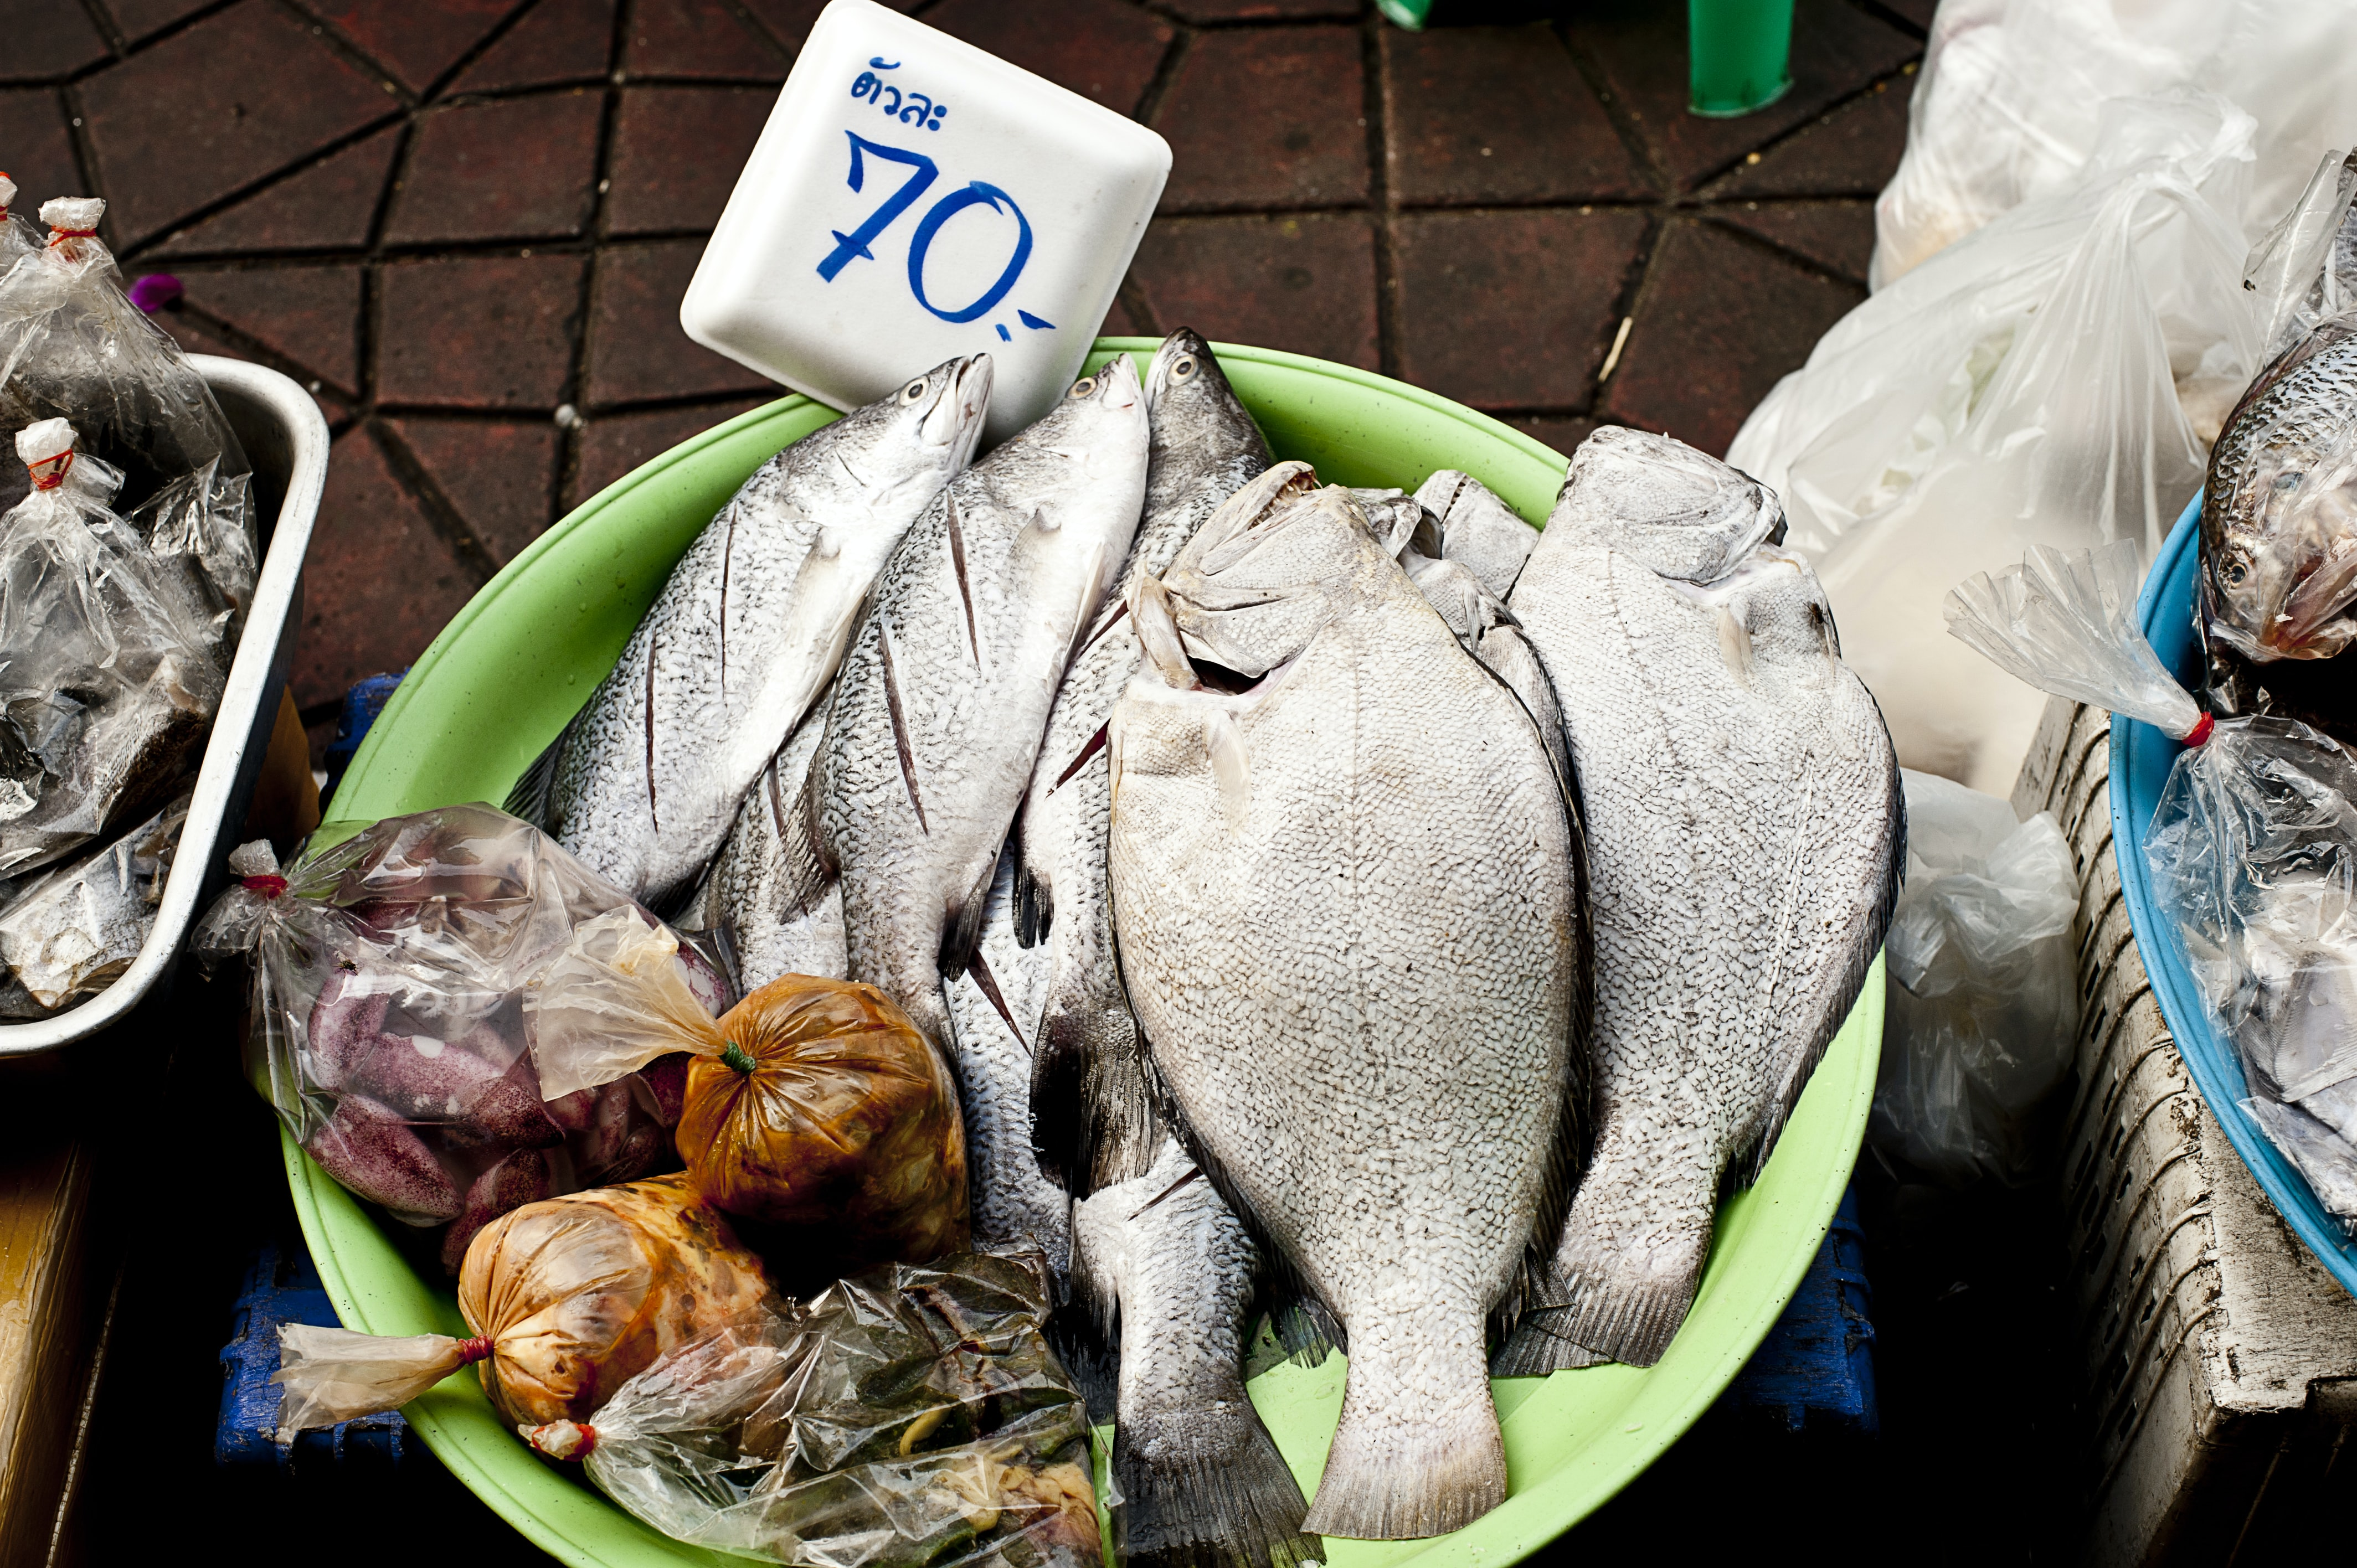 Fish in a large bowl at a fishmonger's stall at a fish market